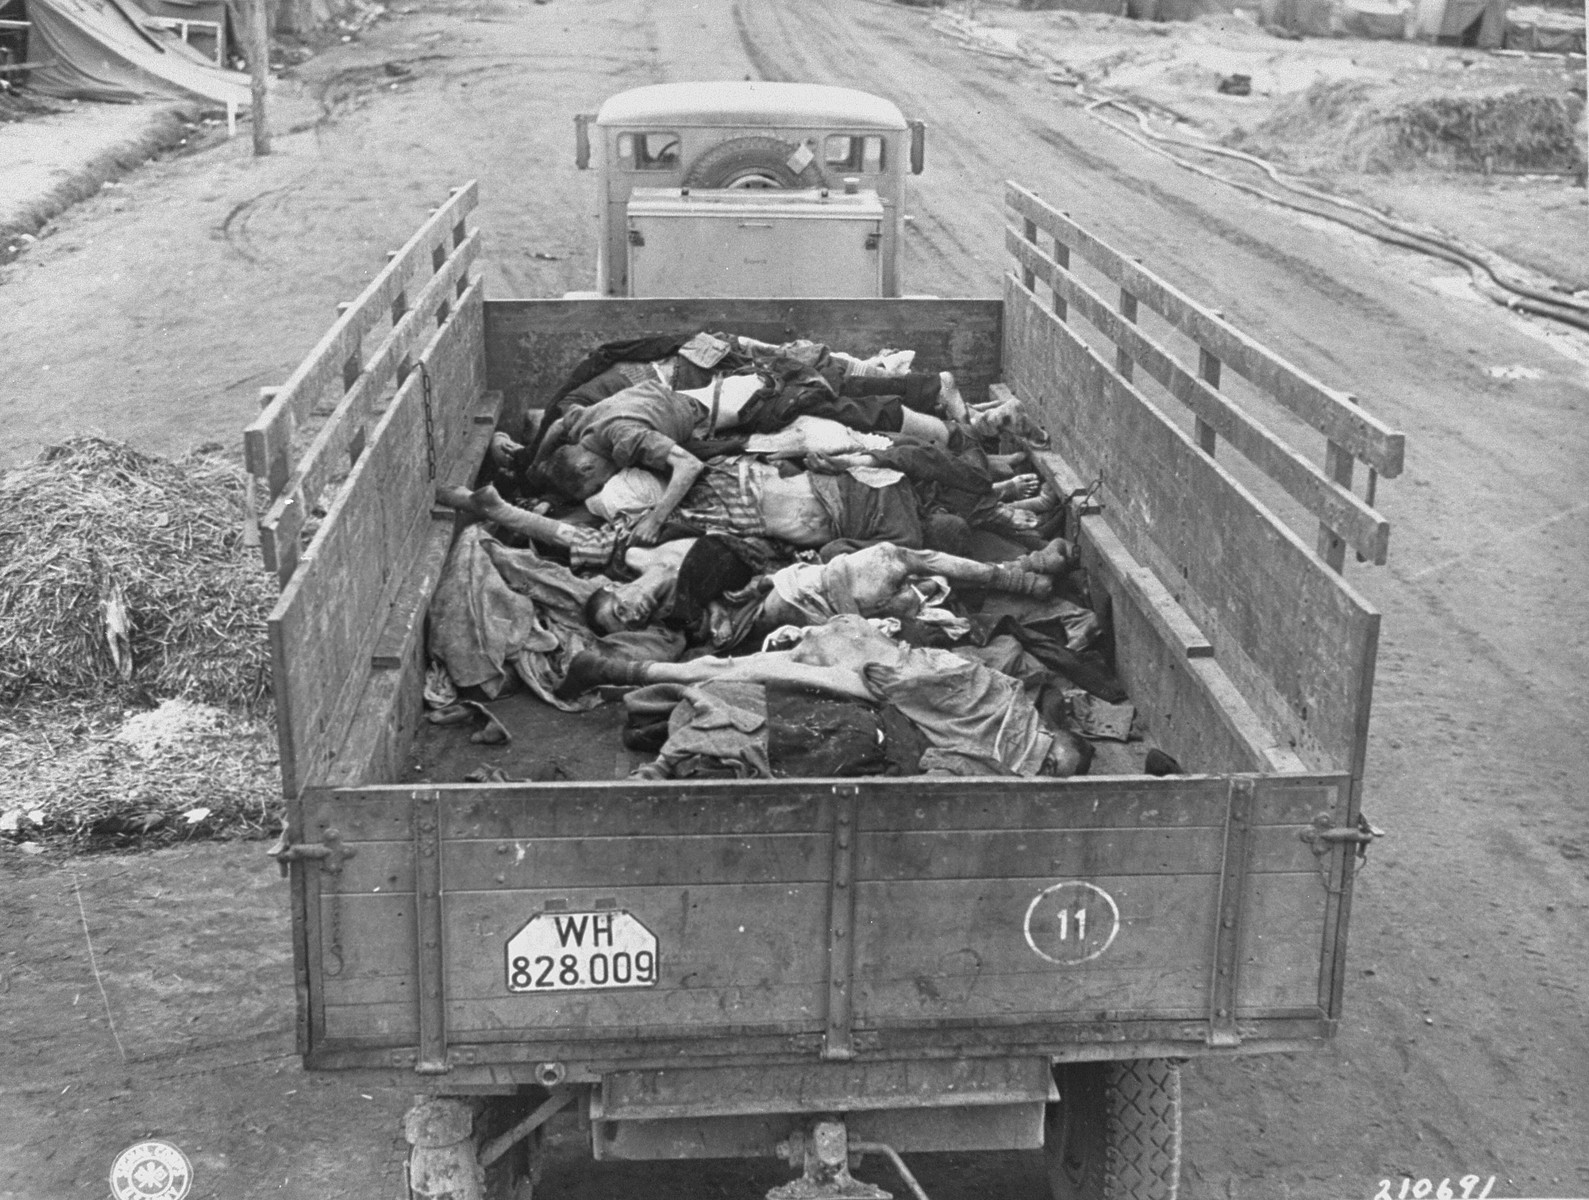 A British Army truck transporting corpses to mass graves for burial.